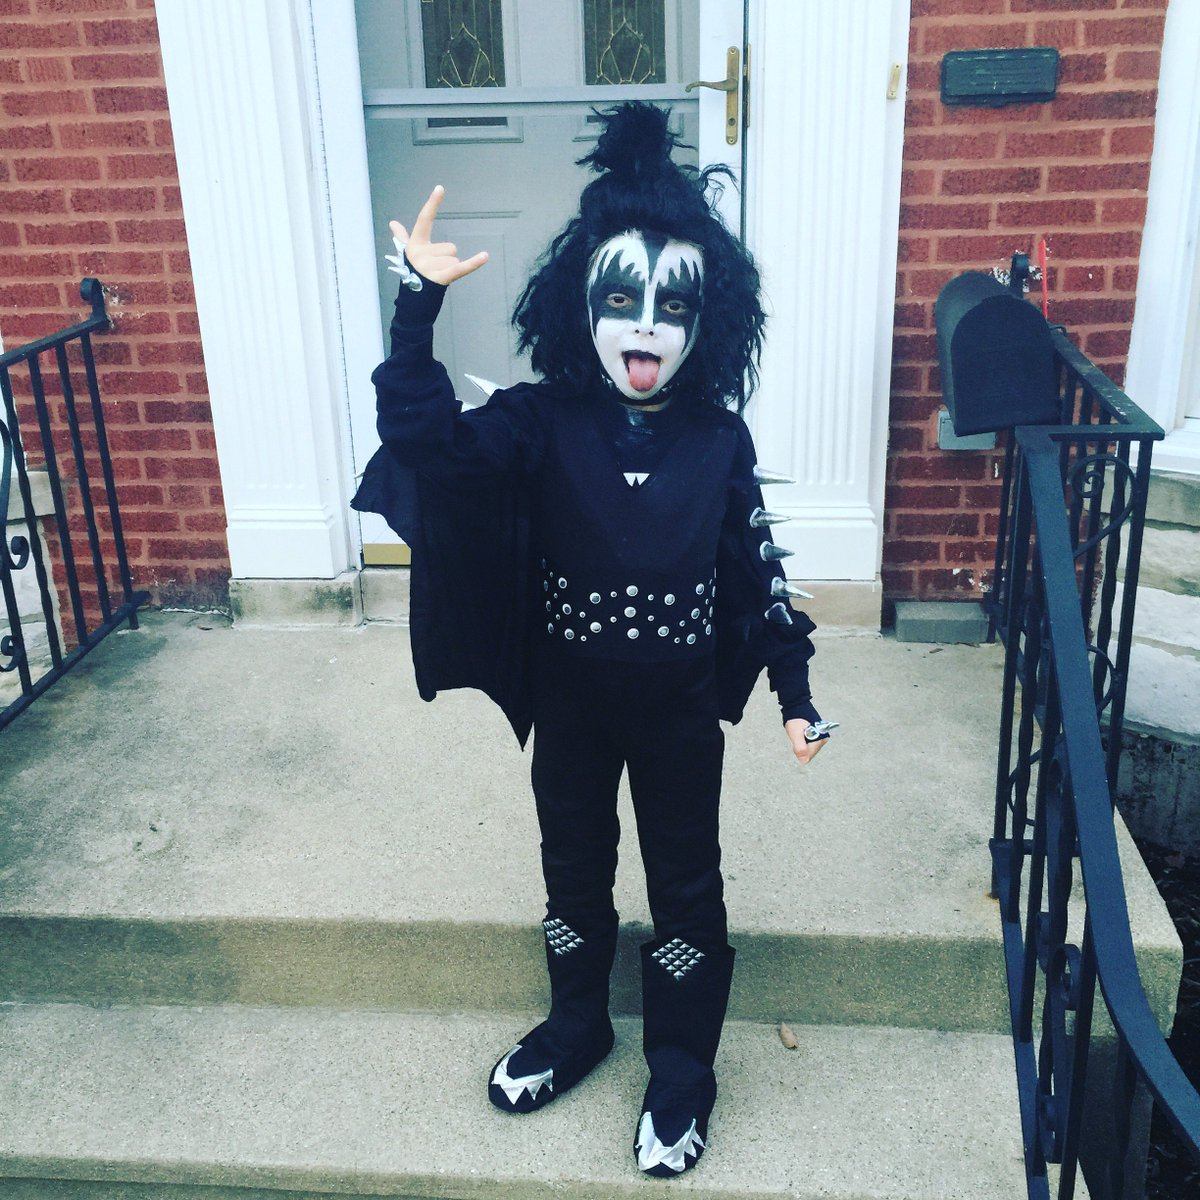 Yeahhhhhhhh! Elmwood Park Rock City!  so happy @genesimmons & @KISSOnline are my kids obsession! #LickItUp https://t.co/YW4hxGnLwR